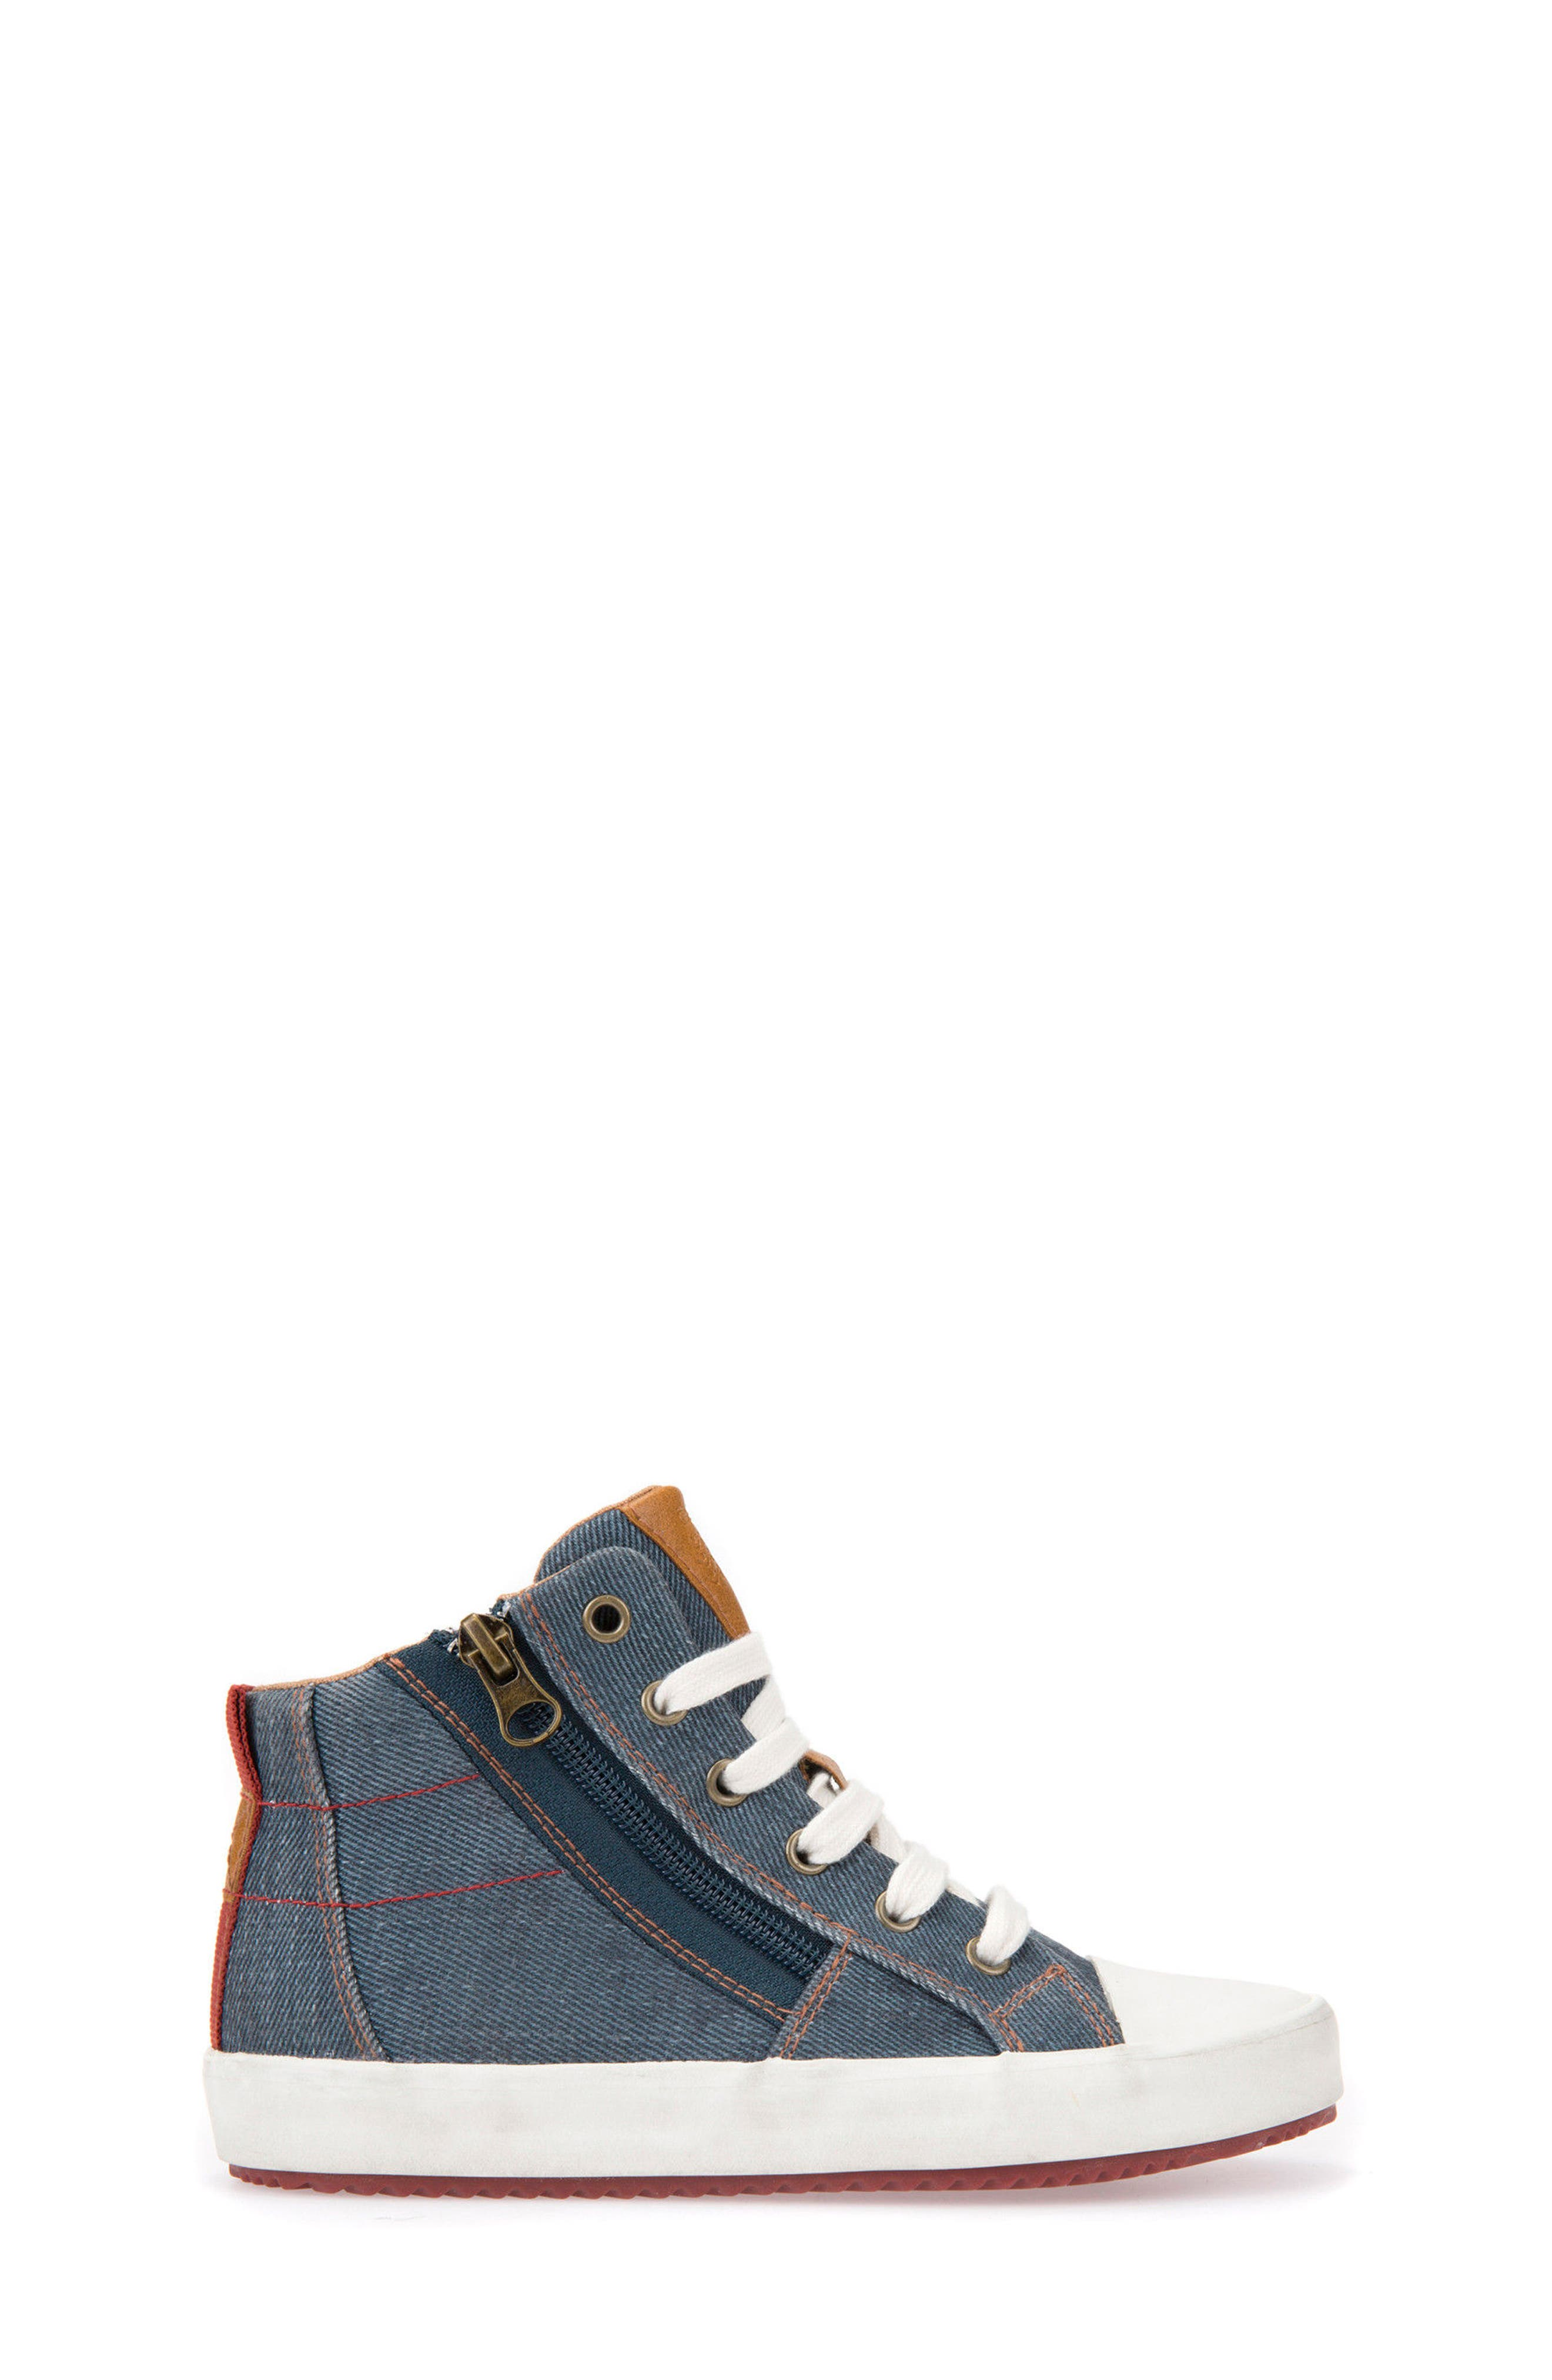 Alonisso High Top Sneaker,                             Alternate thumbnail 3, color,                             426